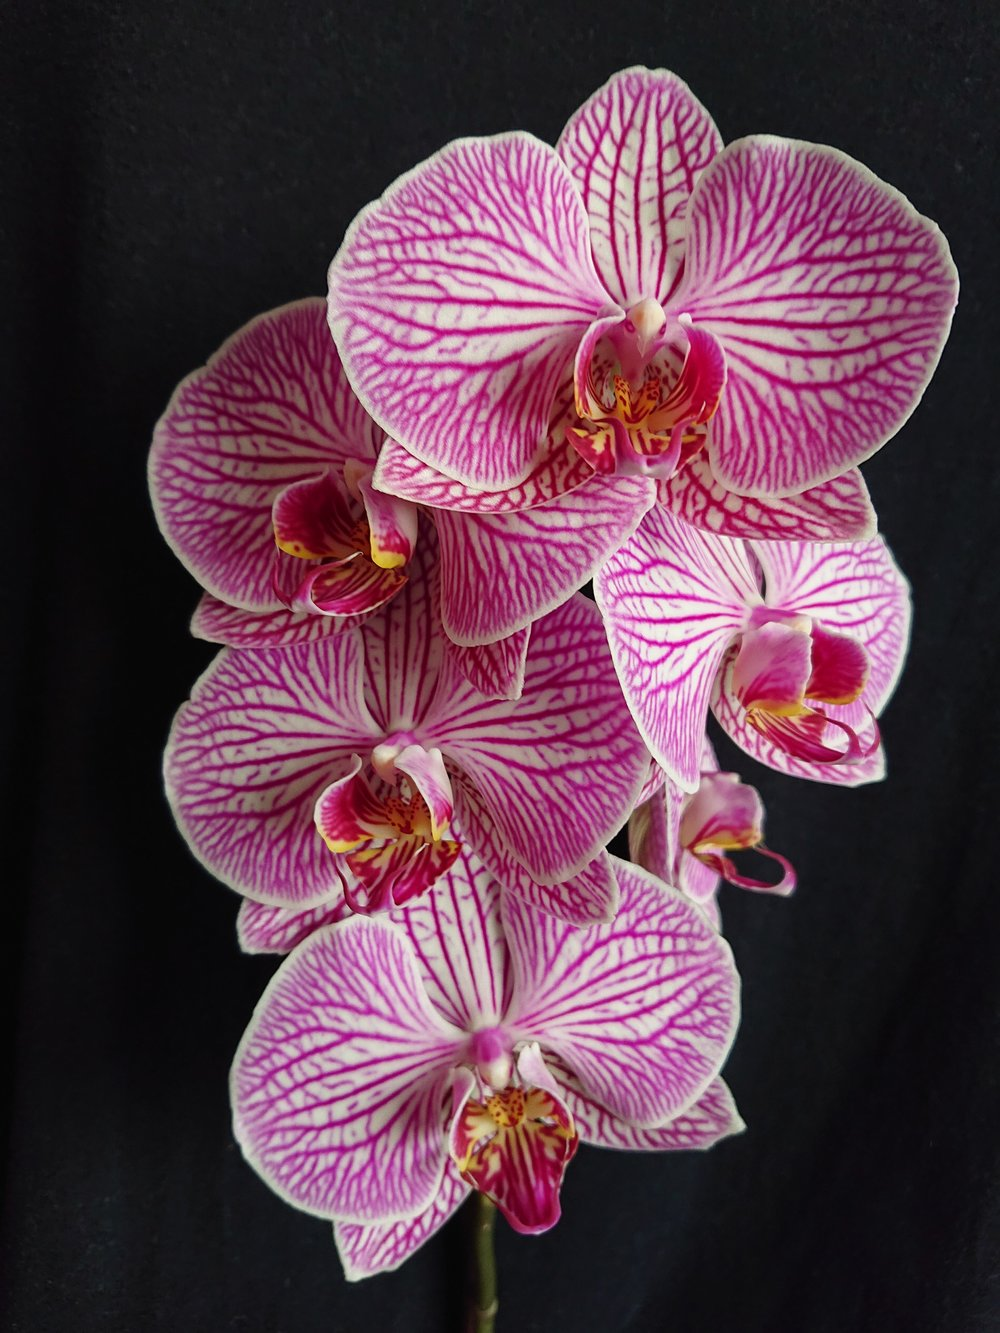 Phal.  Brother Stripes Grown & Photographed by Dr. Stuart Meeson